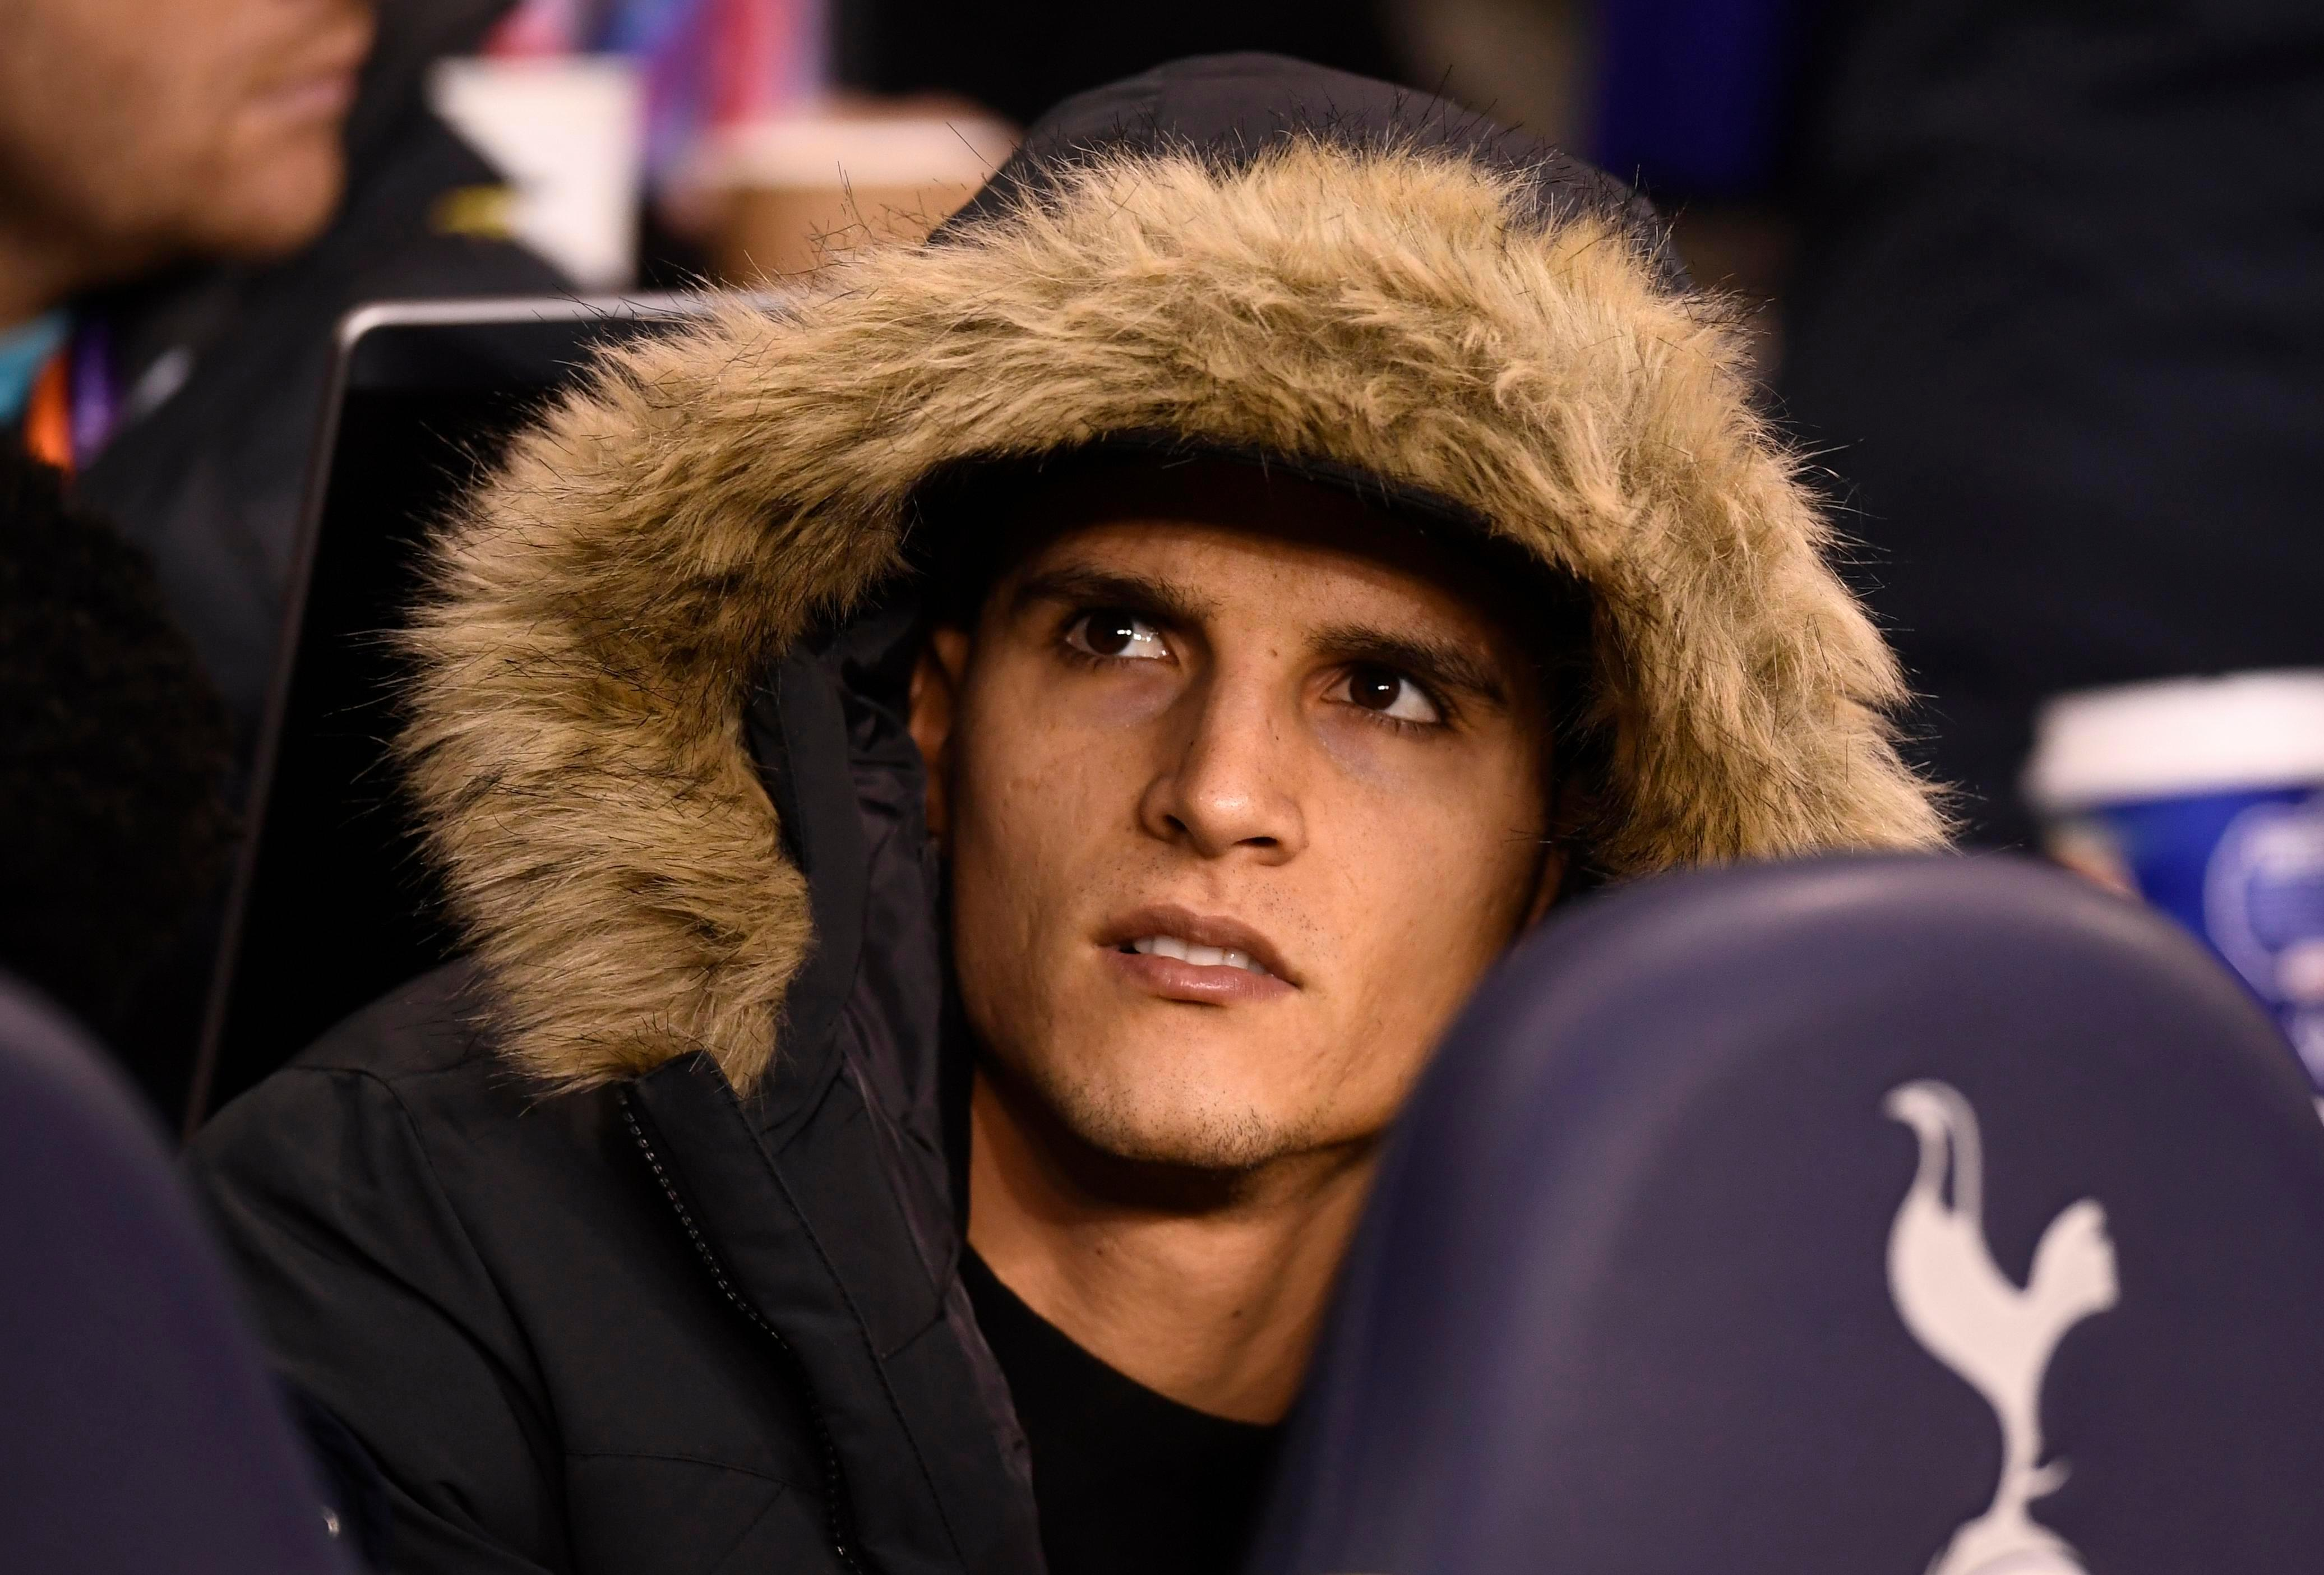 Erik Lamela will have been out for about a calendar year if he recovers from his double hip injury by October